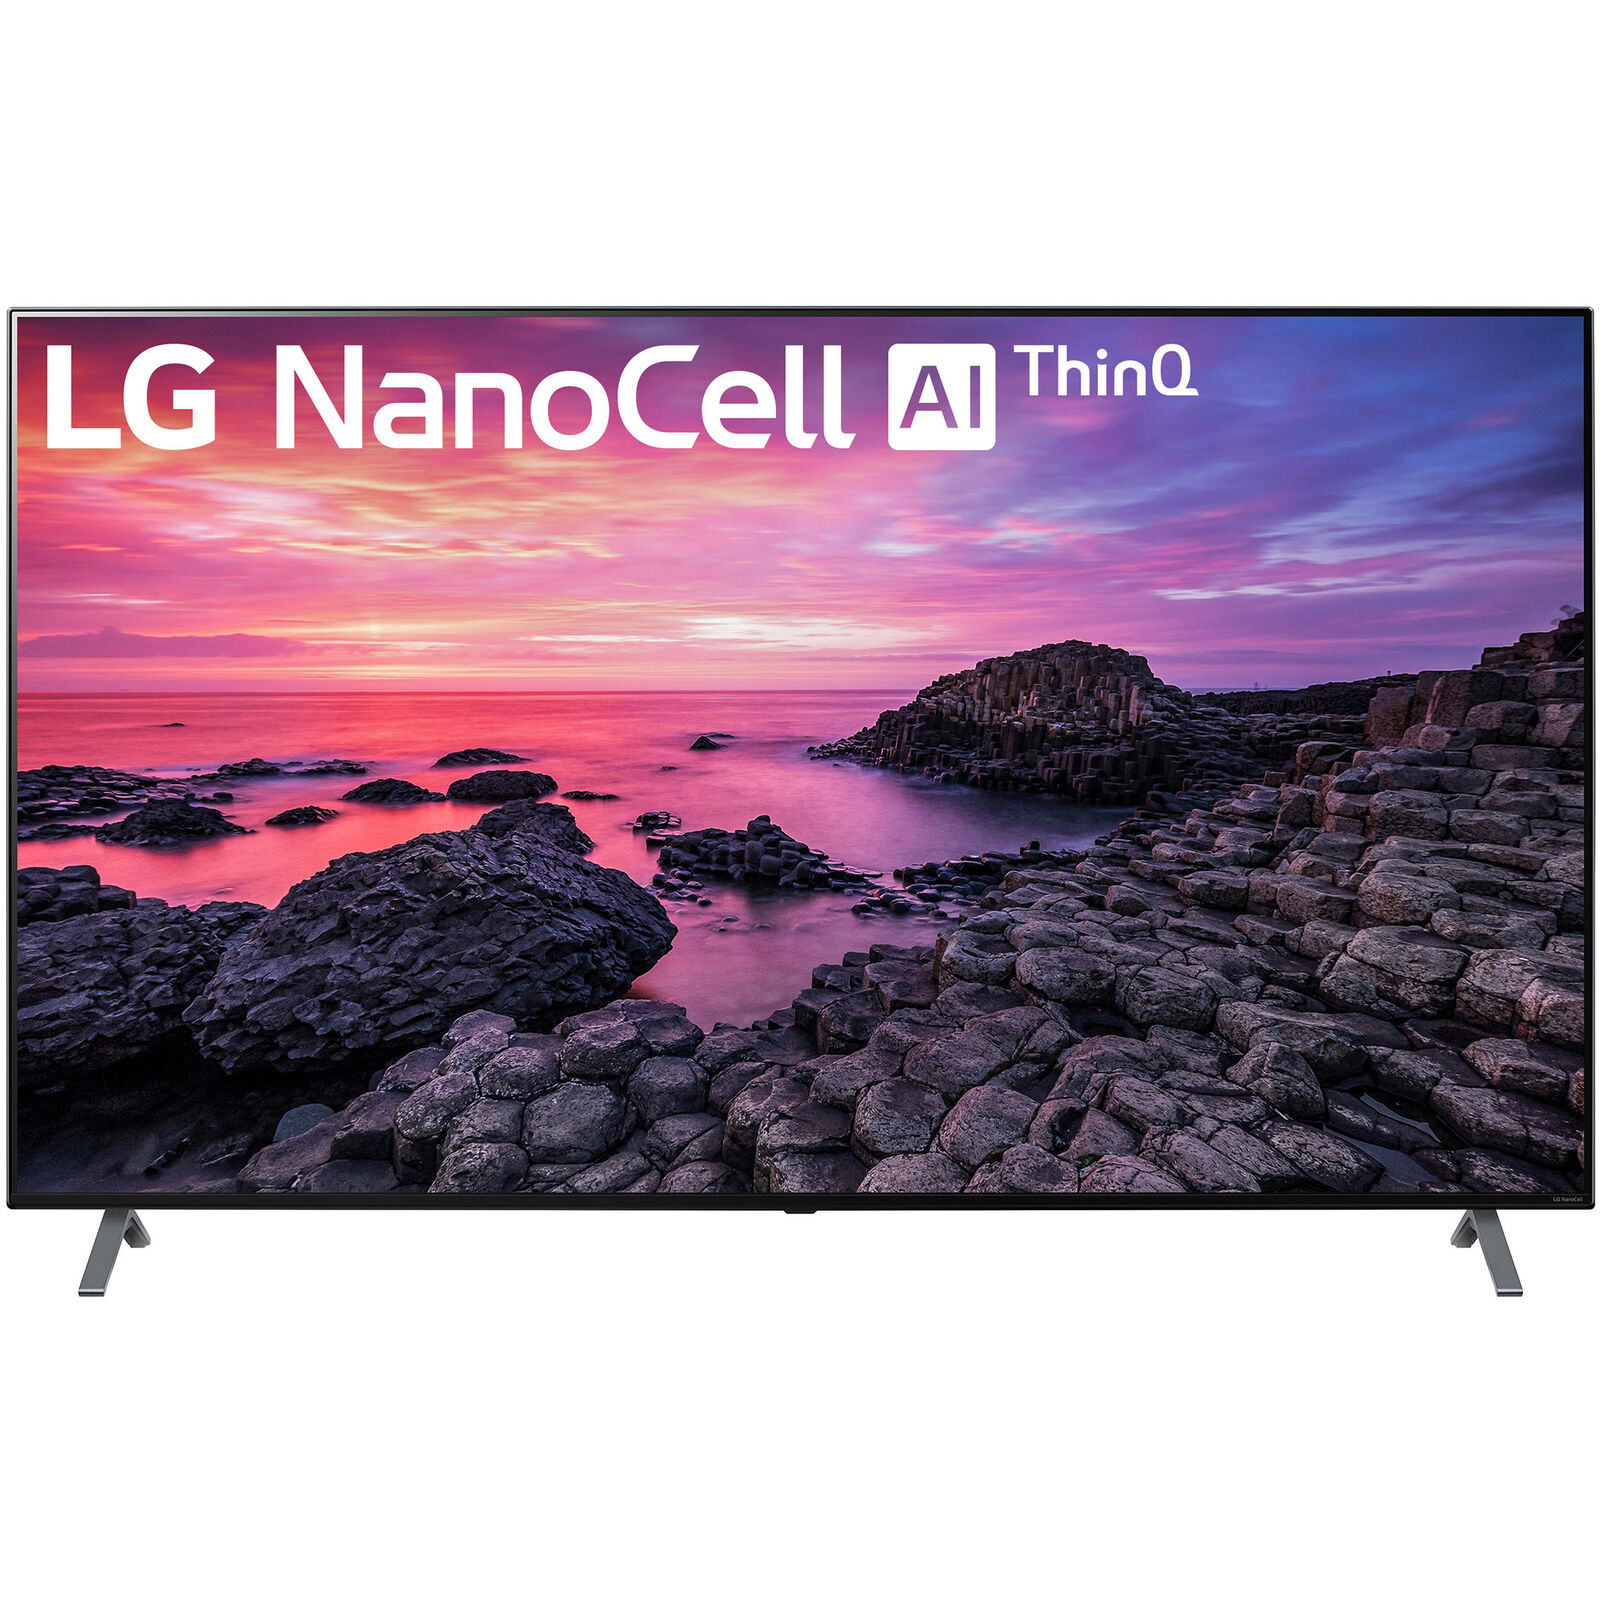 LG 75 NanoCell 90 Series 4K UHD HDR Smart TV - 2020 Model. Available Now for 1696.99